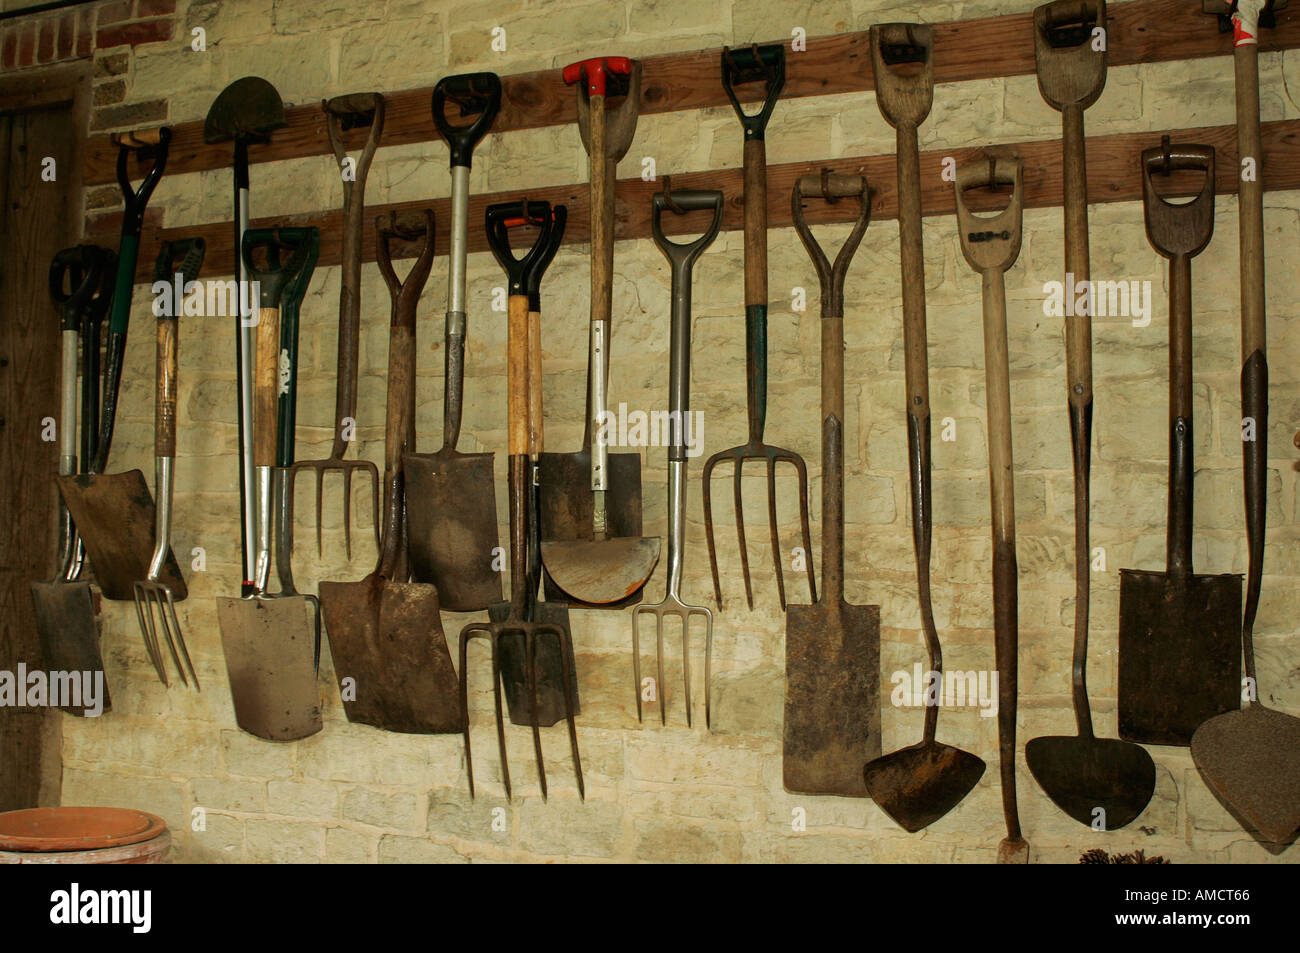 How to hang tools in shed to hang tools in shed rows of for Gardening tools wikipedia